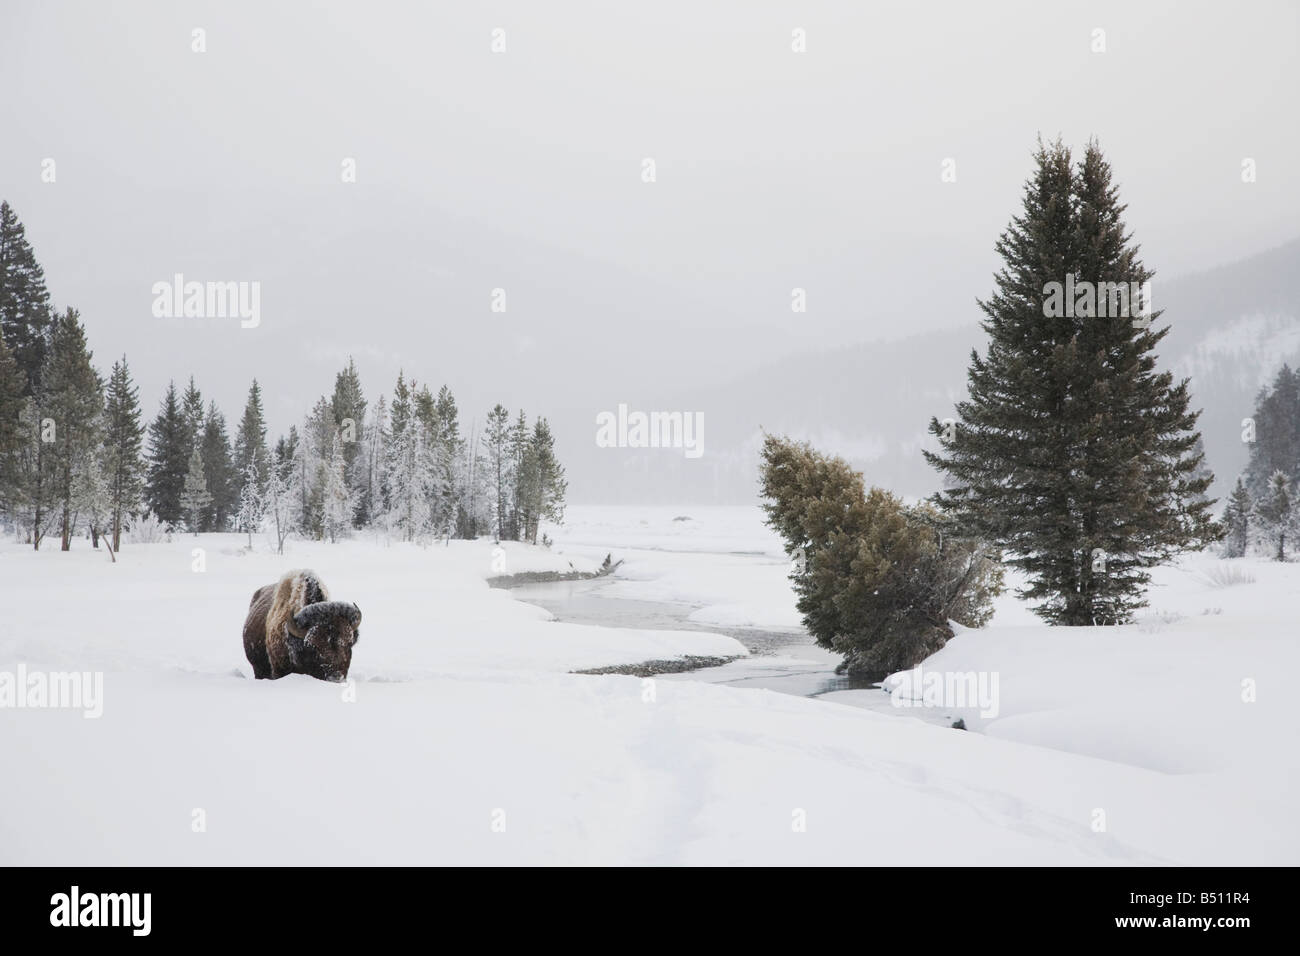 American Bison Buffalo Bison bison adult in snow Yellowstone National Park Wyoming USA - Stock Image